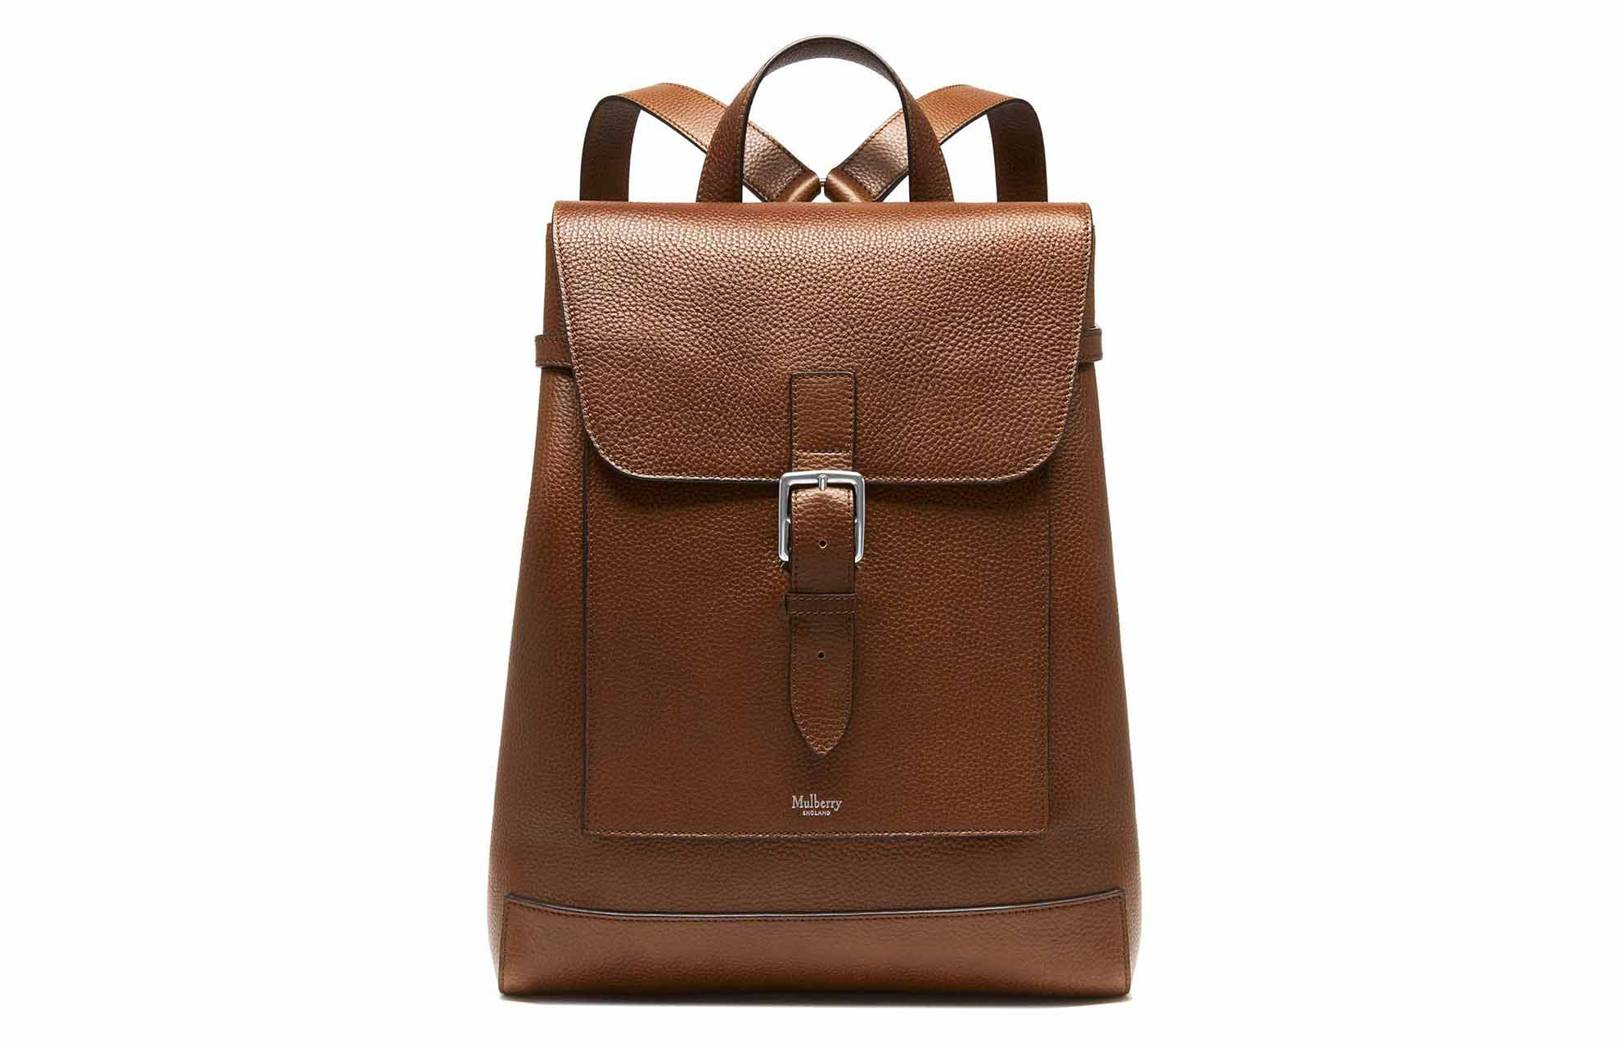 2c3ebb371a0 Laptop Bags For Women   The Best Work Backpacks And Leather Totes   British  Vogue